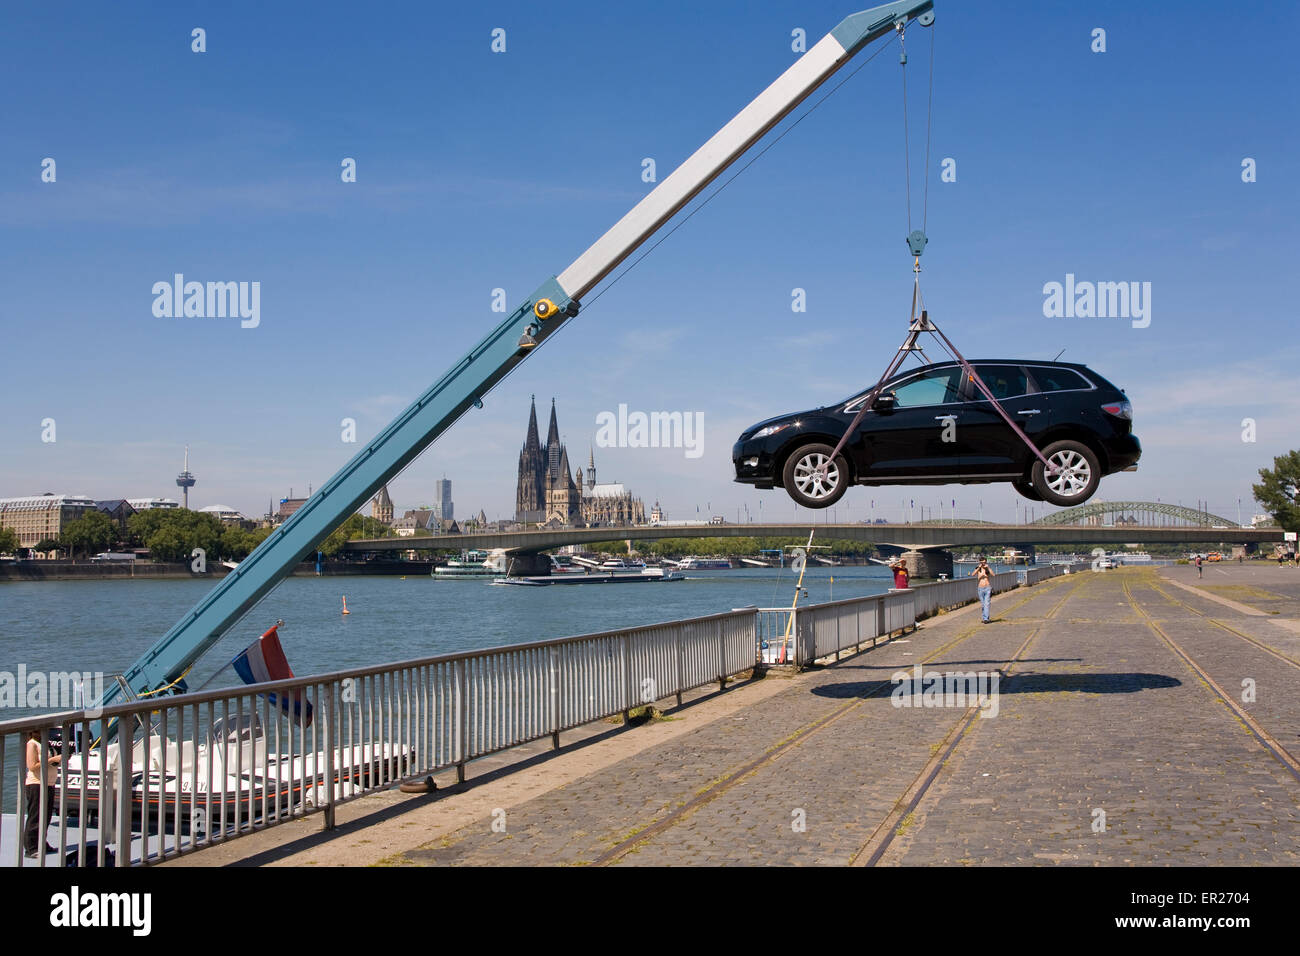 Europe, Germany, Cologne, a boatman at the bank of the river Rhine lands his car, in the background Cologne cathedral. - Stock Image